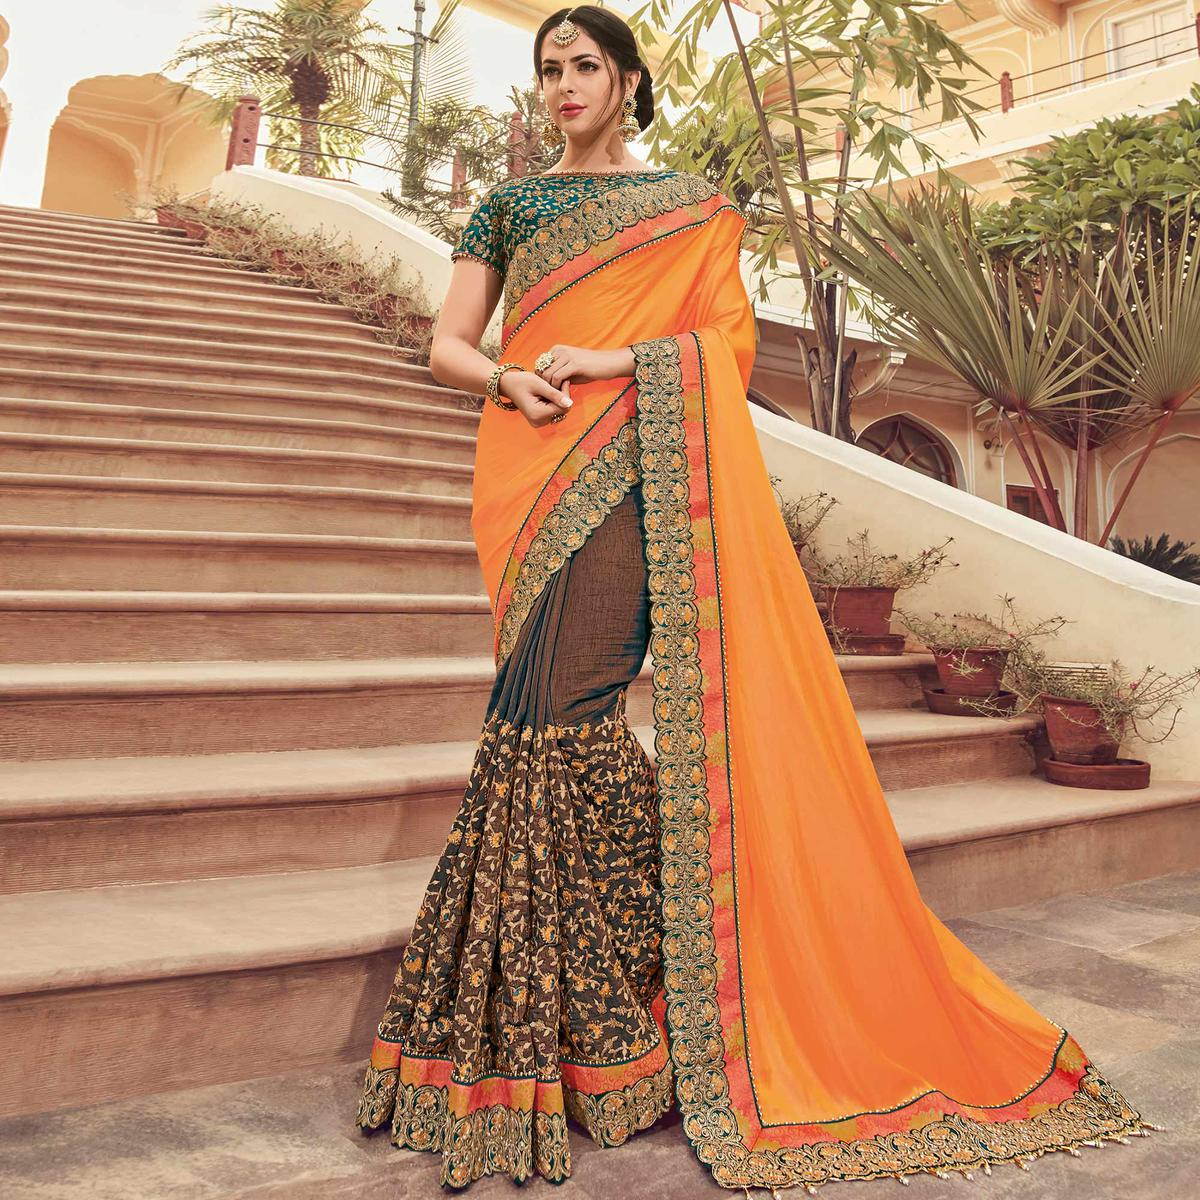 Desirable Orange-Brown Colored Wedding Wear Embroidered Satin Georgette & Raw Silk Saree